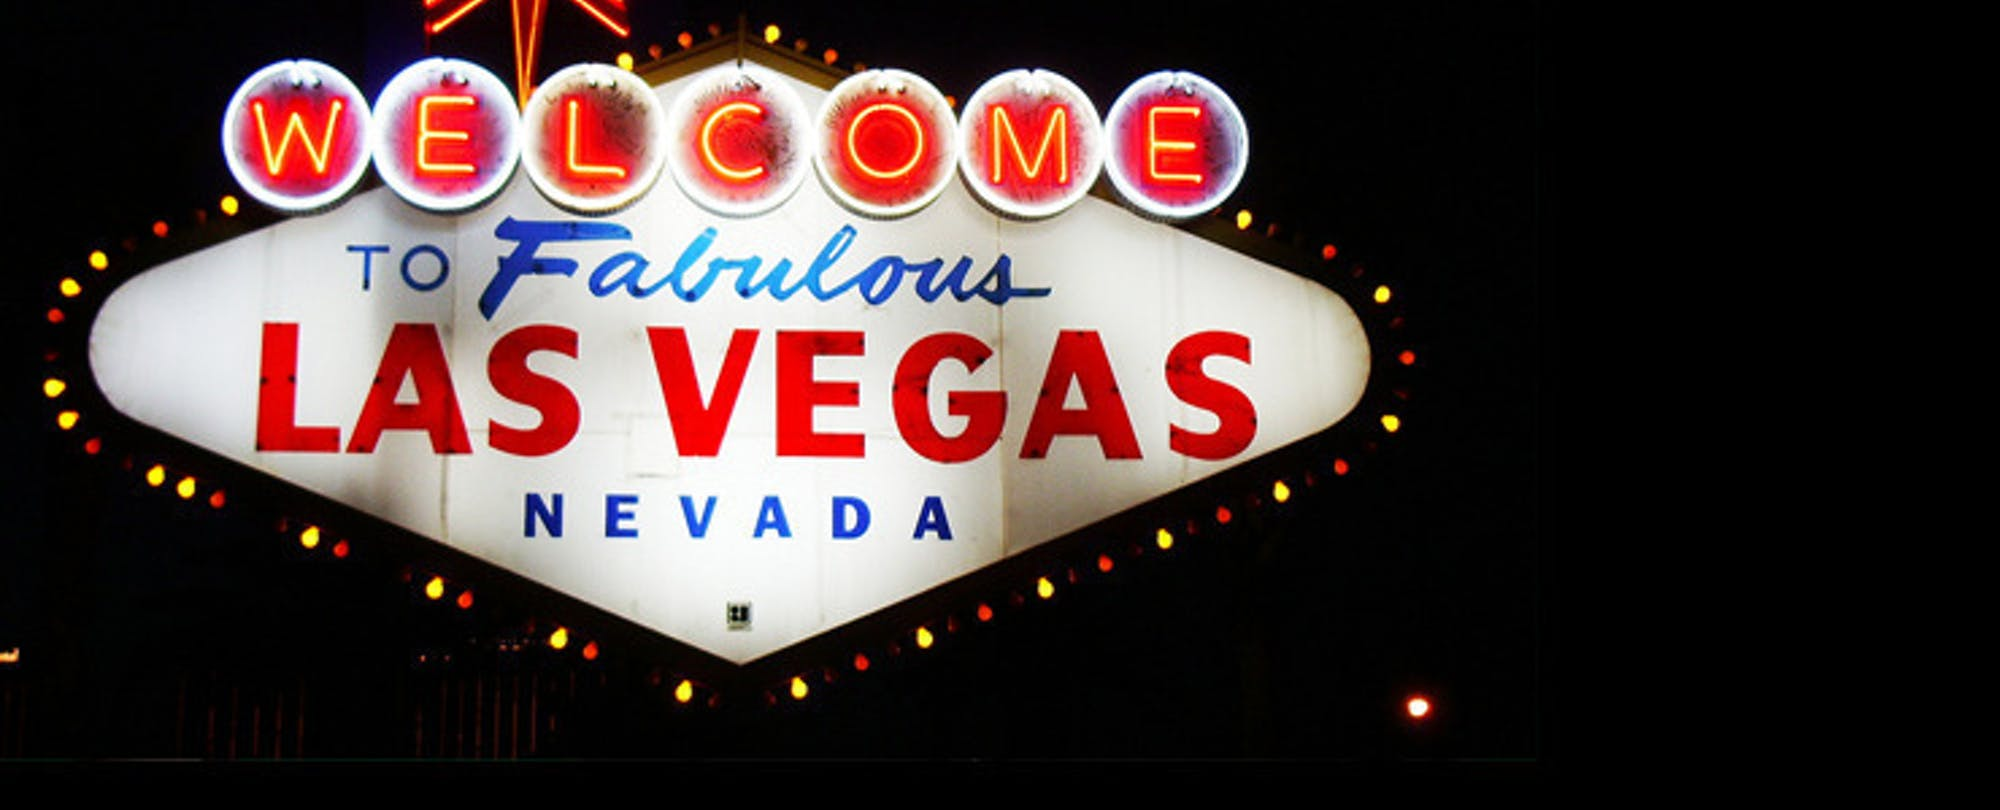 MOOCs and Learning in Las Vegas